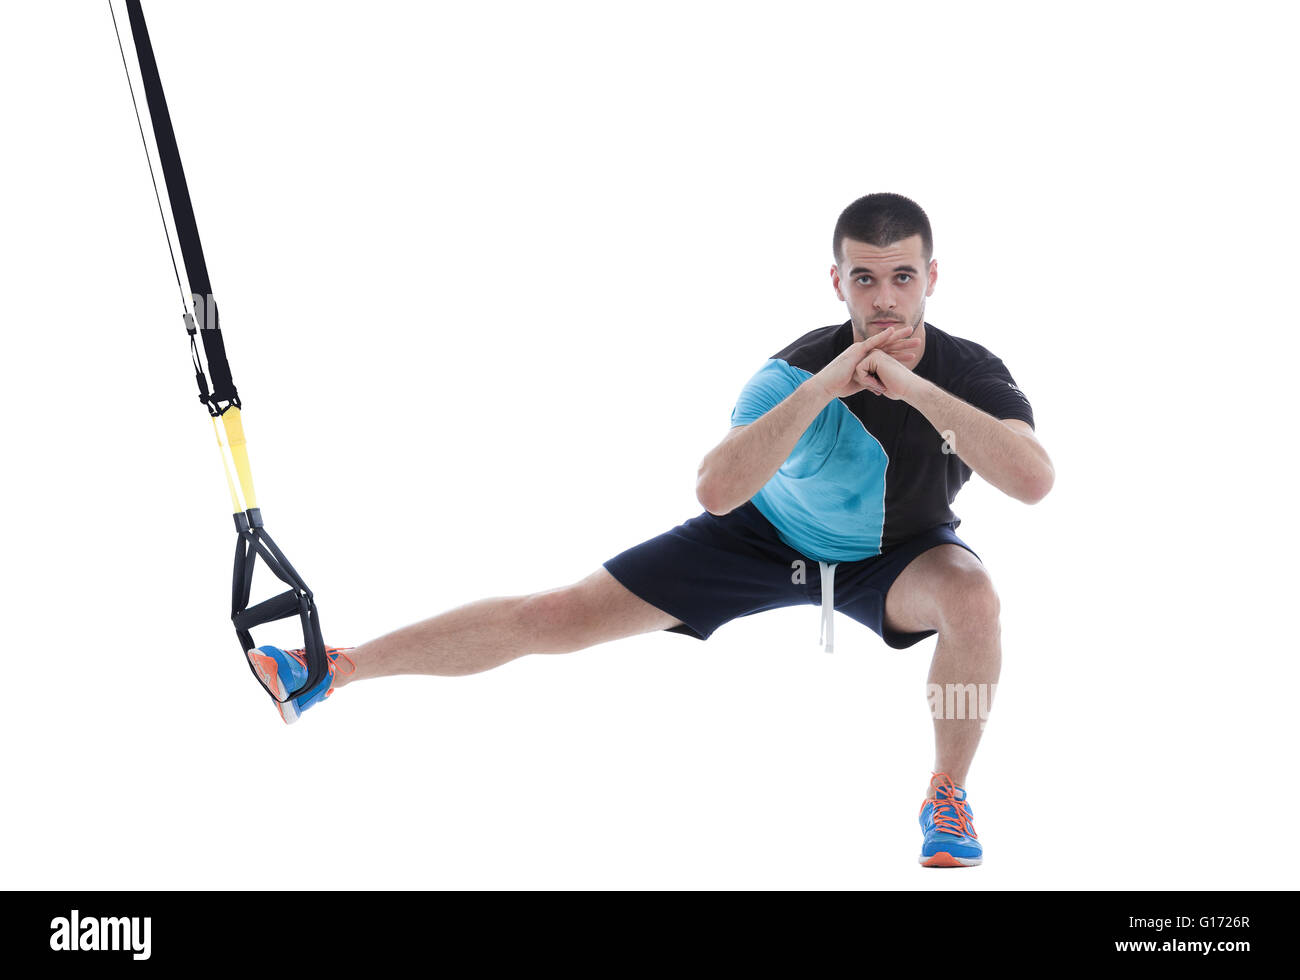 Athletic trainer on functional loops for training isolated on white background. - Stock Image